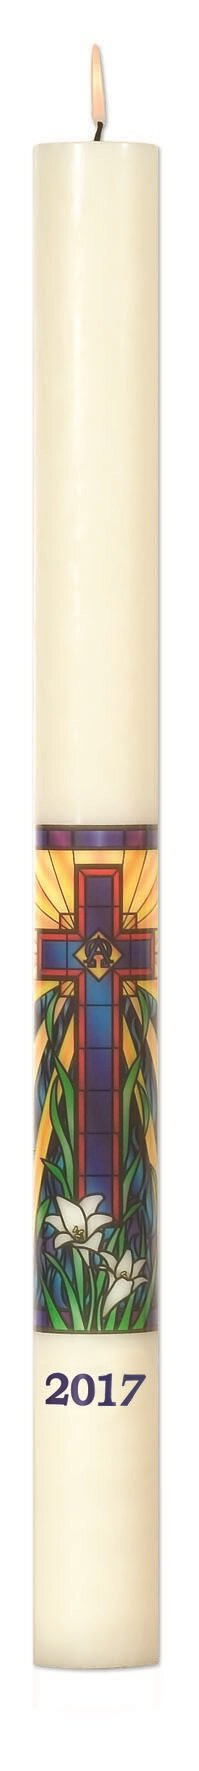 No 6 Special Radiant Light Mosaic Paschal Candle